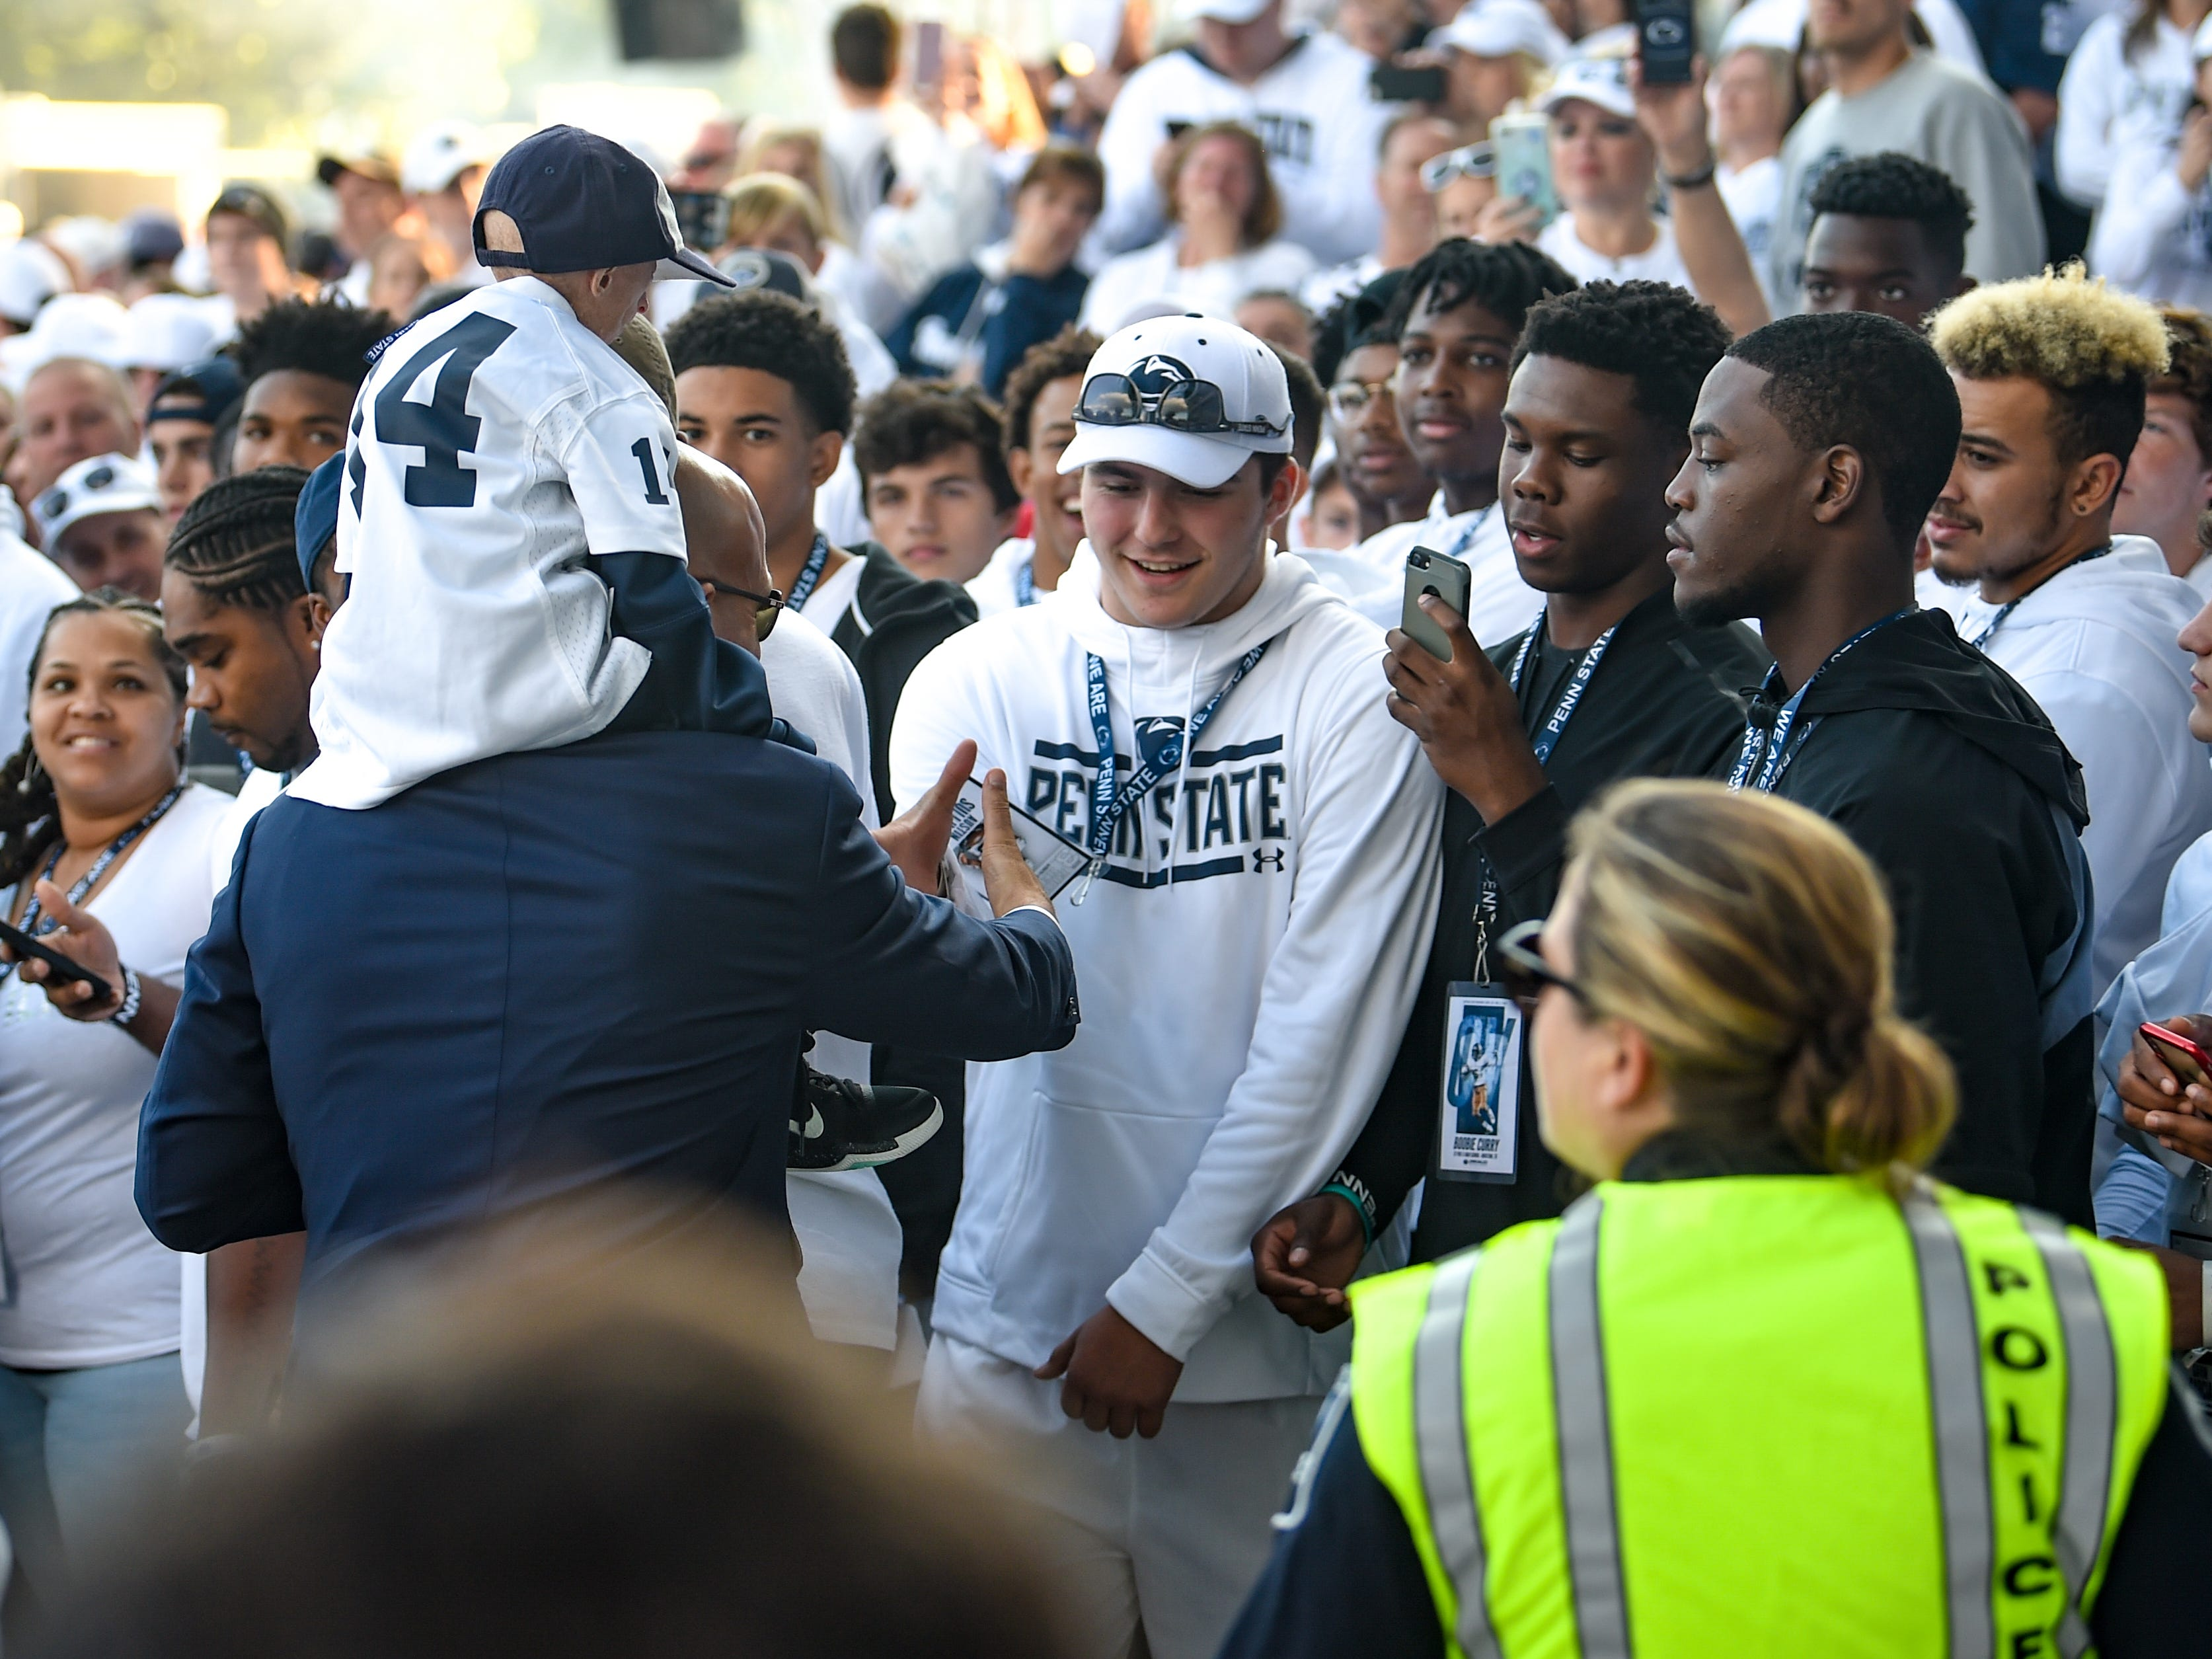 The recruits eagerly shake Penn State coach James Franklin's hand as he passes by, Saturday, September 29, 2018.